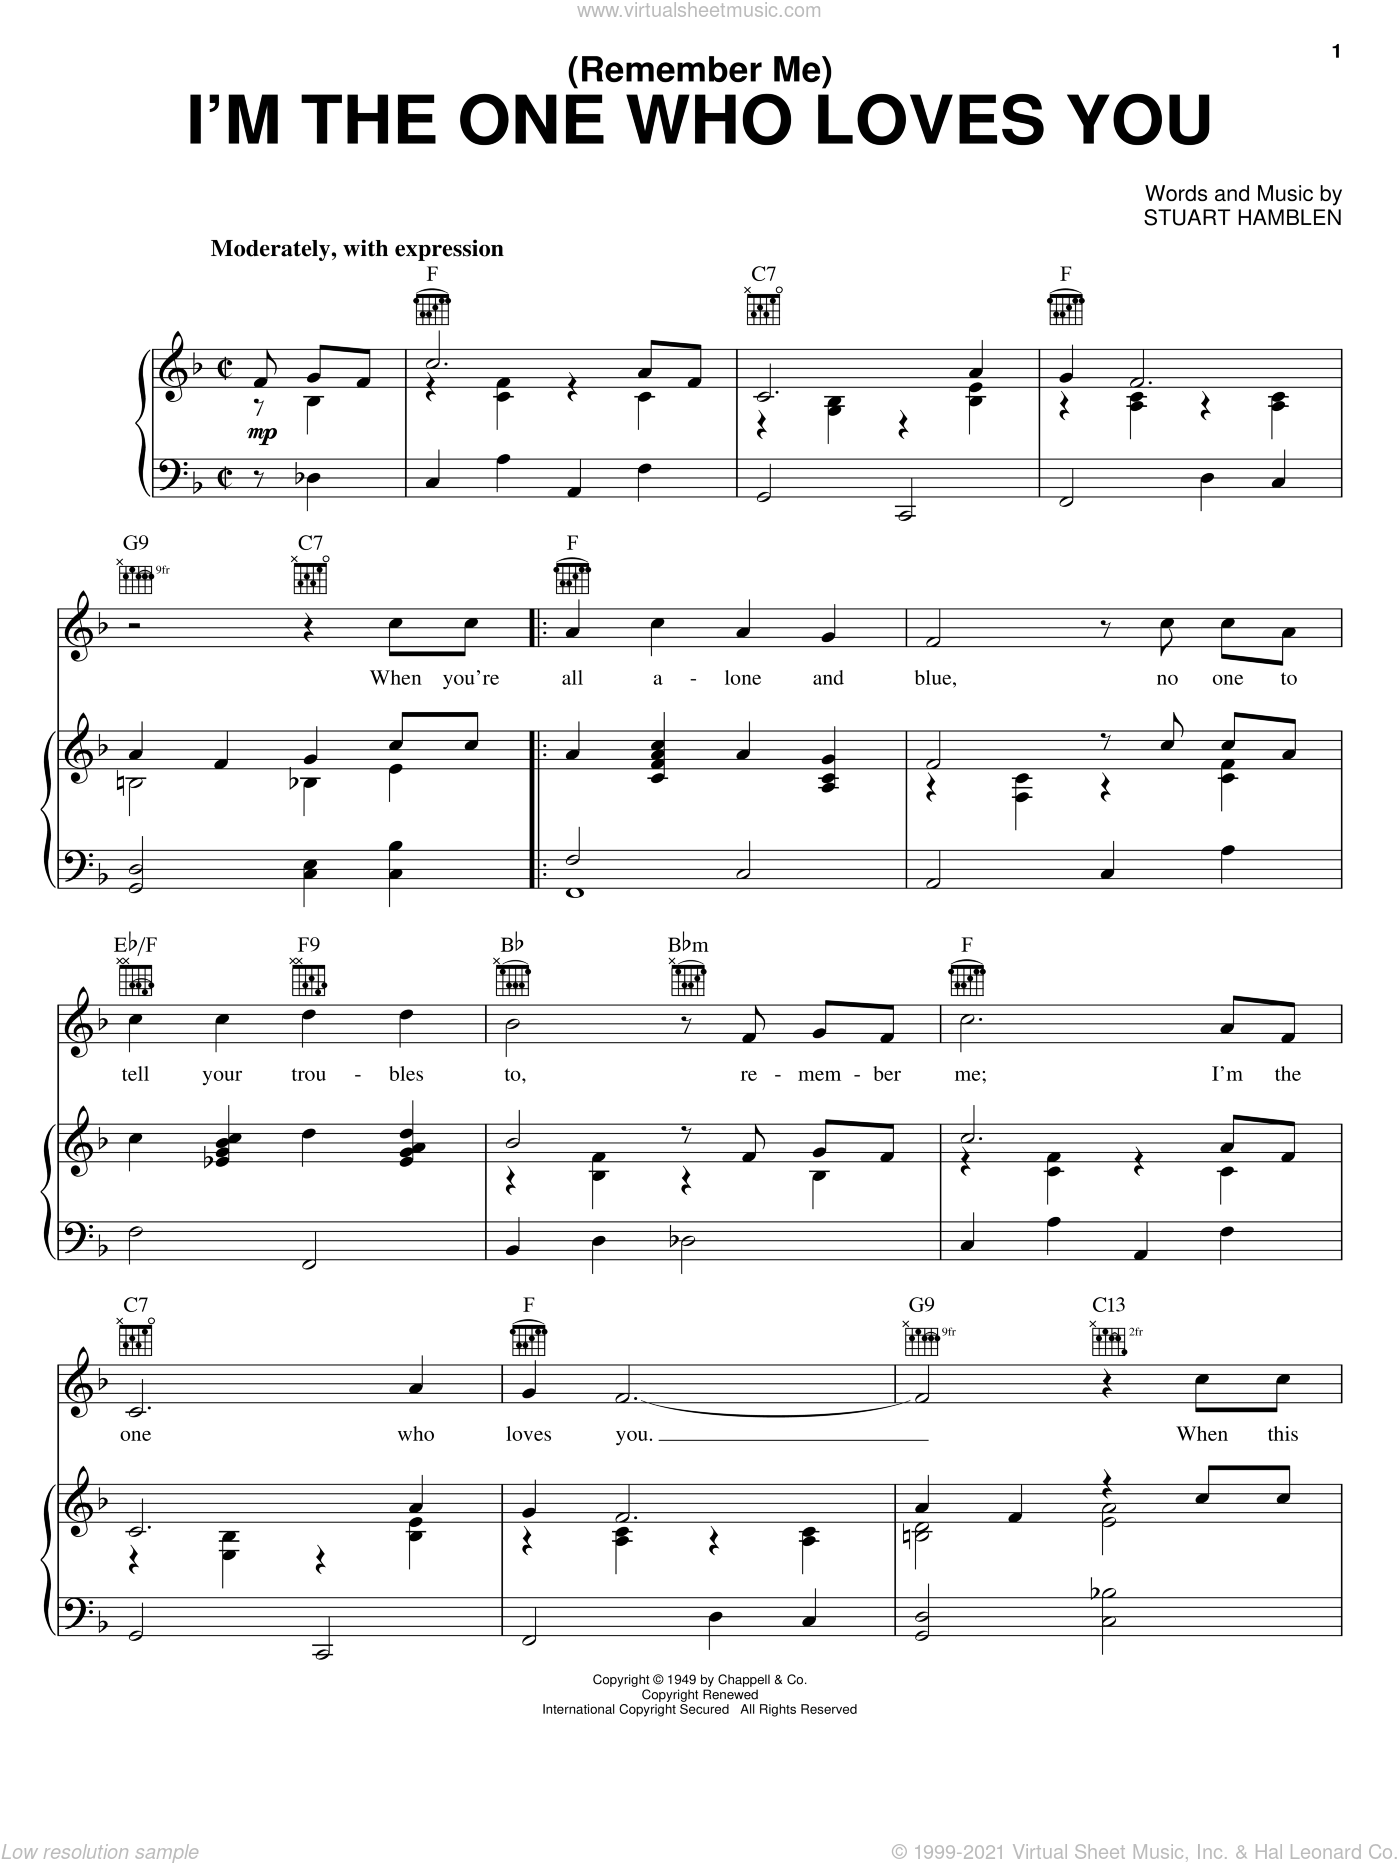 (Remember Me) I'm The One Who Loves You sheet music for voice, piano or guitar by Stuart Hamblen